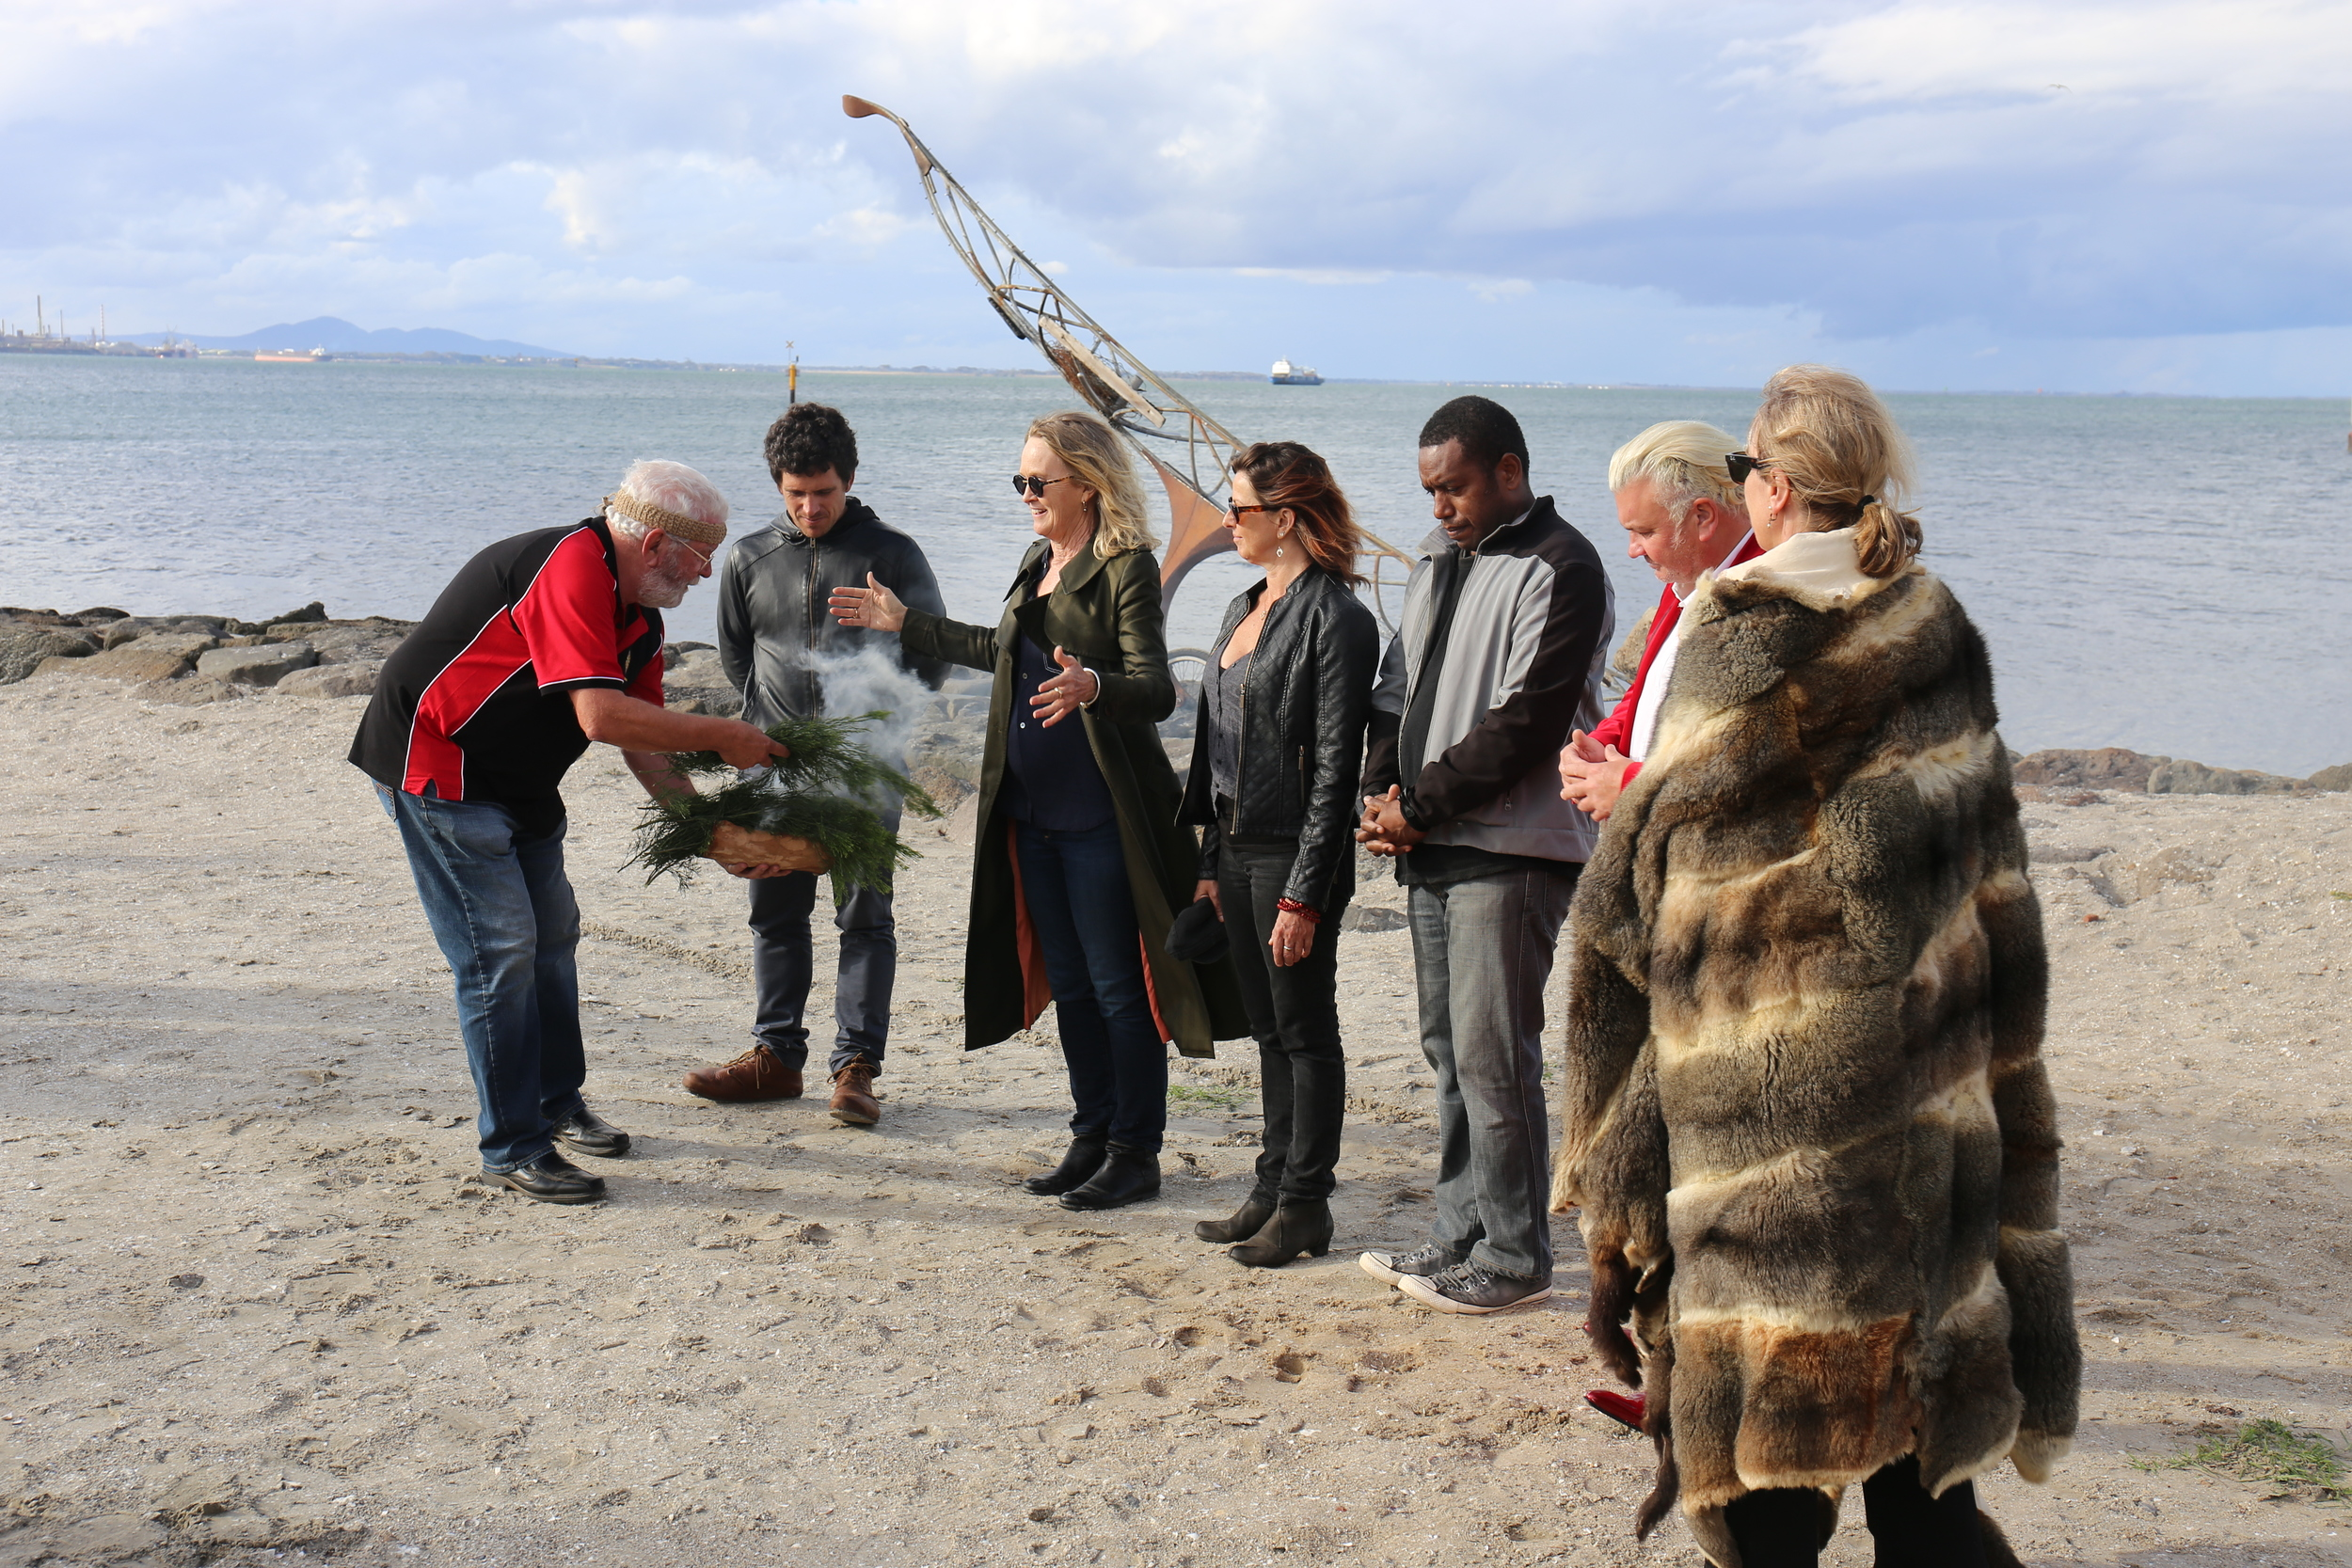 Wadawurrung Elder Uncle Bryon Powell smoking 2014 Canoe artist Benjamin Gilbert, Mountain to Mouth Artistic Director Meme McDonald, Mahony Maia Kiely, Leonard Tebegetu, Mayor Darryn Lyons and Manager of Arts and Culture Kaz Paton at the  Eastern Beach ceremony.